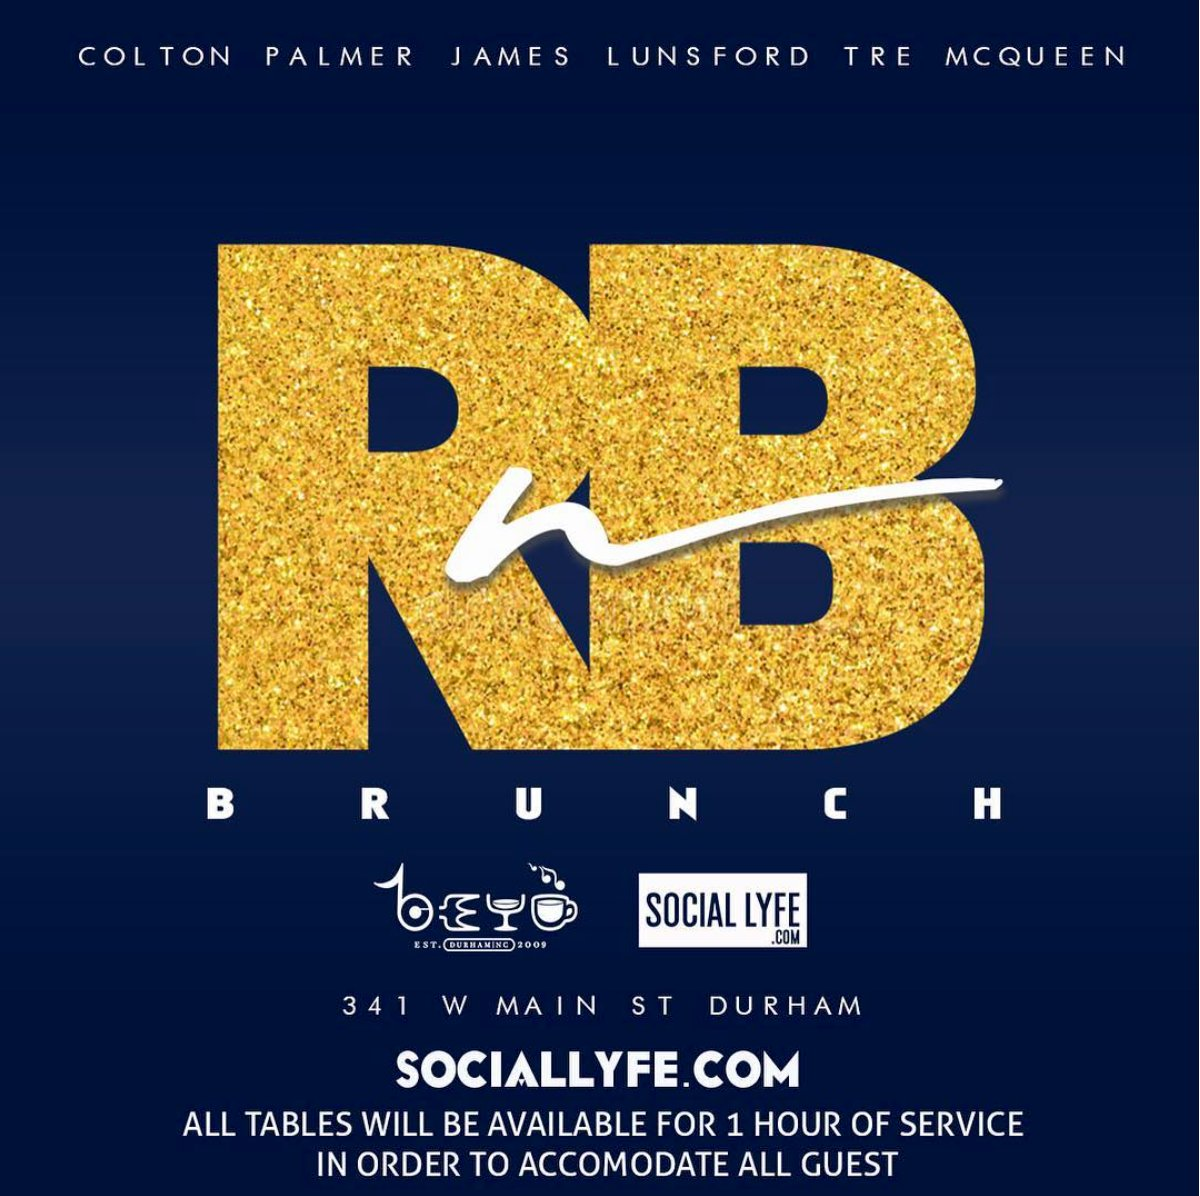 303476a867b Or you could join us for our RnB Brunch and turn up! Presented by Social  Lyfe this Saturday 4/28 from 1pm-5pm. RSVP: http://bit.ly/2I3SwaT #dayparty  ...